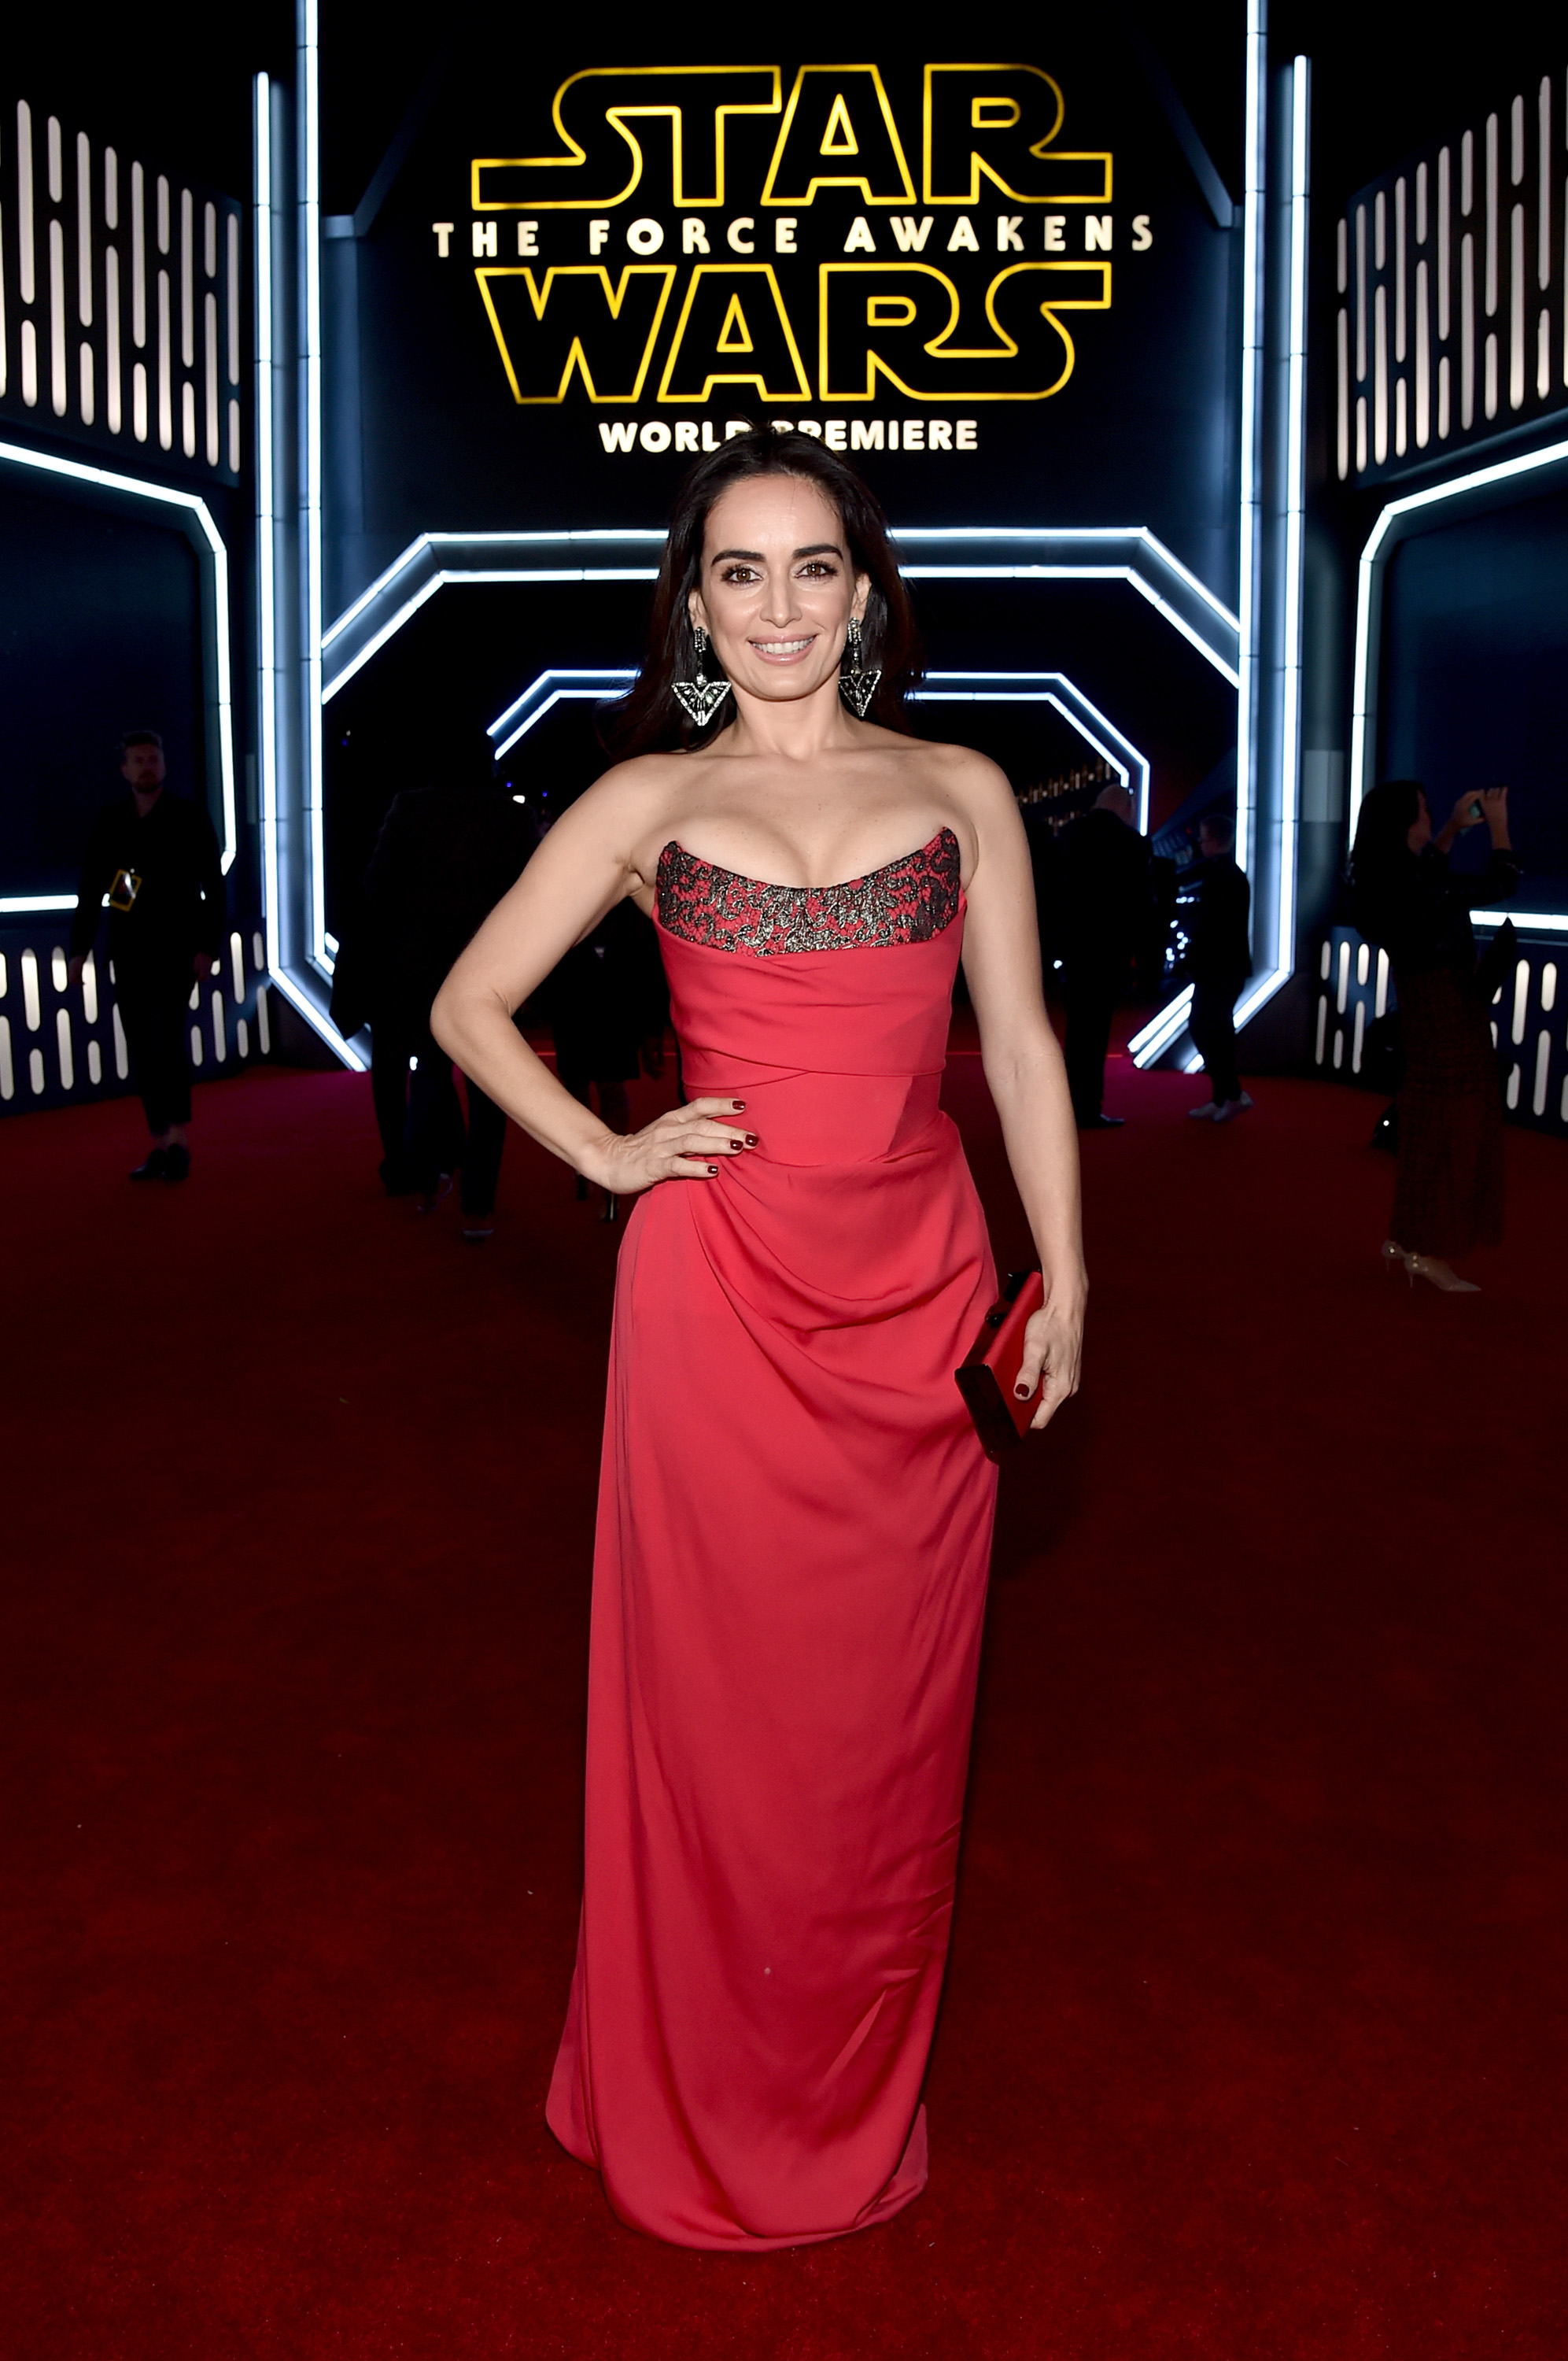 HOLLYWOOD, CA - DECEMBER 14:  Actress Ana de la Reguera attends the World Premiere of ?Star Wars: The Force Awakens? at the Dolby, El Capitan, and TCL Theatres on December 14, 2015 in Hollywood, California.  (Photo by Alberto E. Rodriguez/Getty Images for Disney) *** Local Caption *** Ana de la Reguera